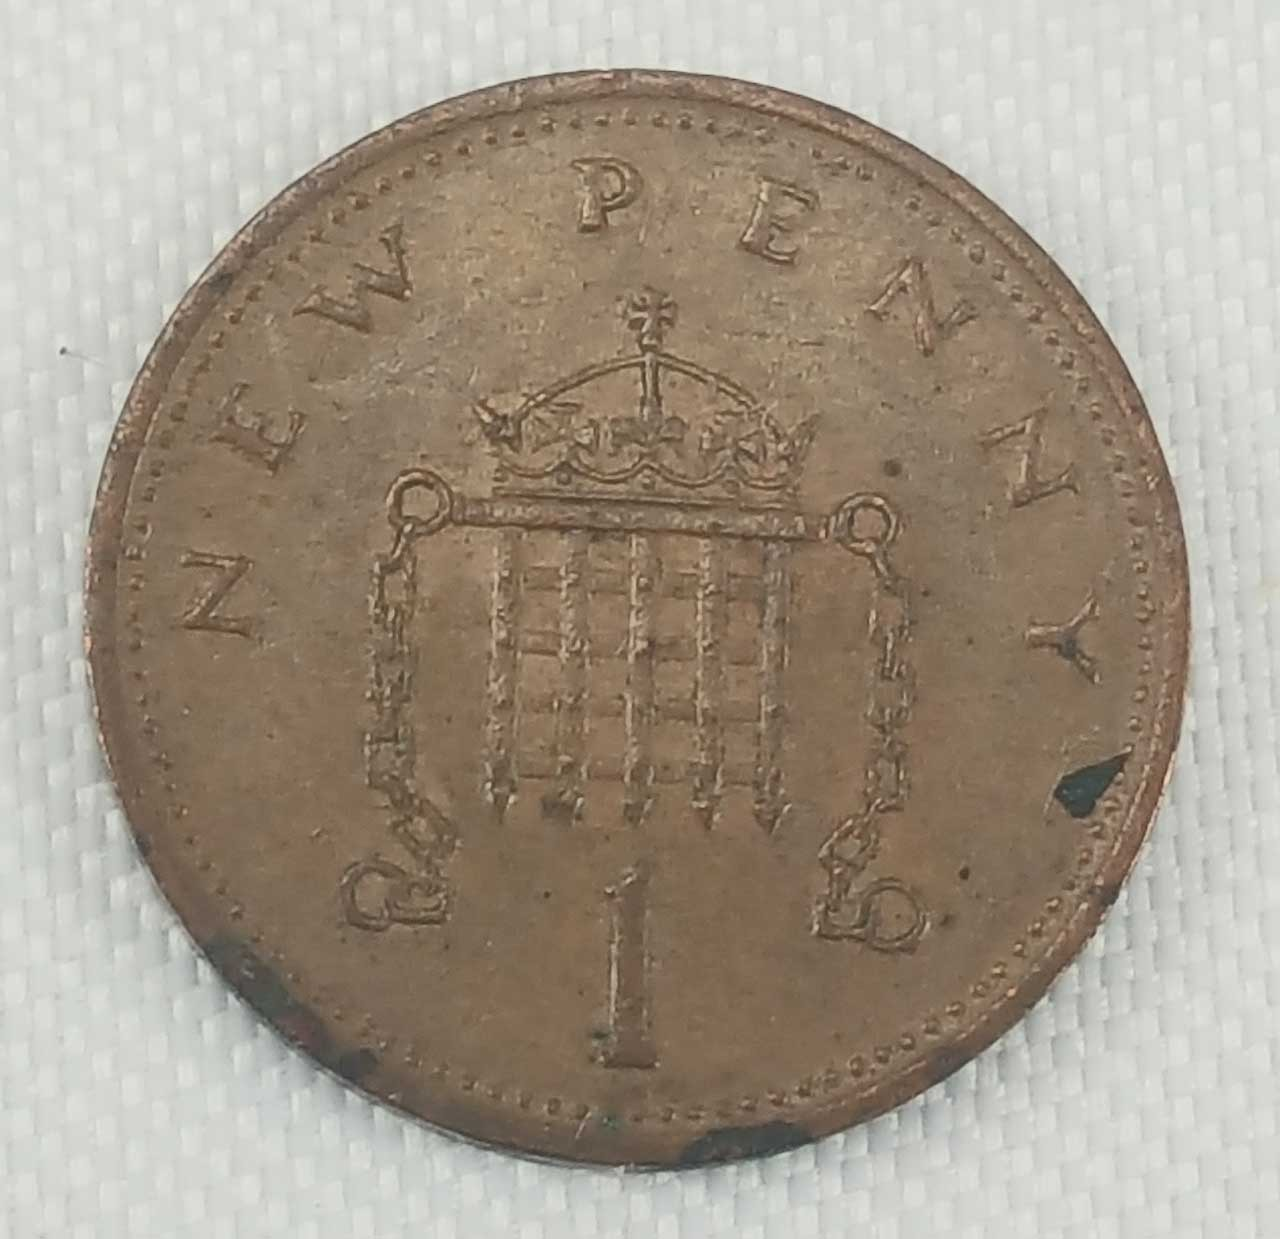 1971 UK Great Britain 1 New Penny Coin Elizabeth I